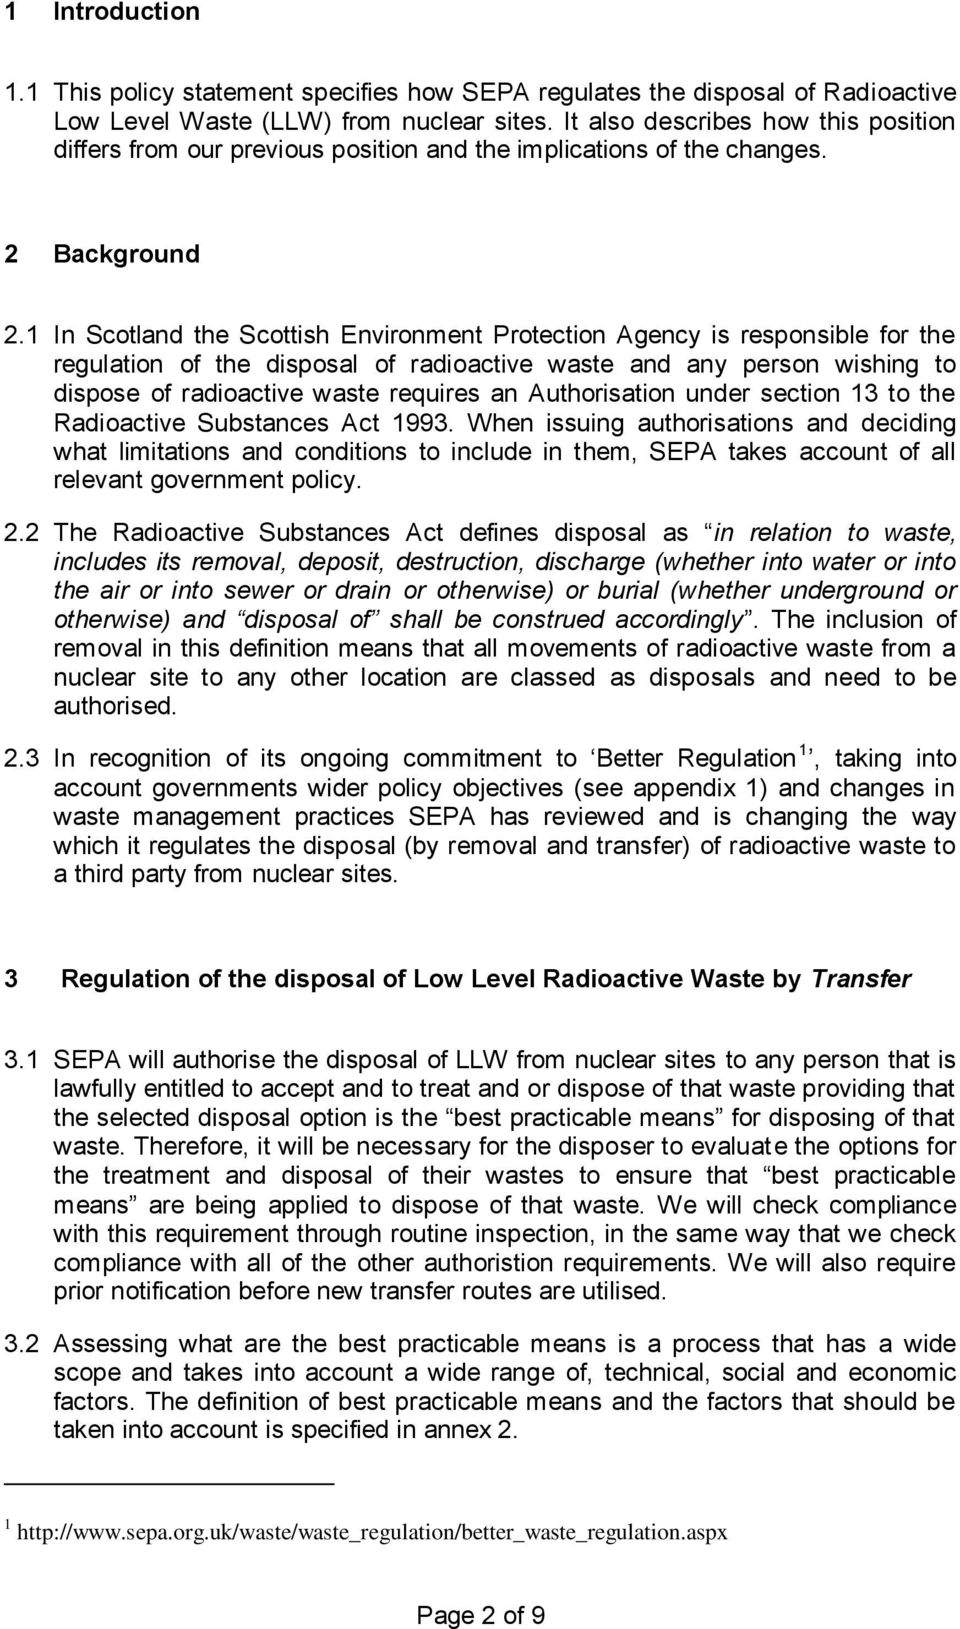 1 In Scotland the Scottish Environment Protection Agency is responsible for the regulation of the disposal of radioactive waste and any person wishing to dispose of radioactive waste requires an